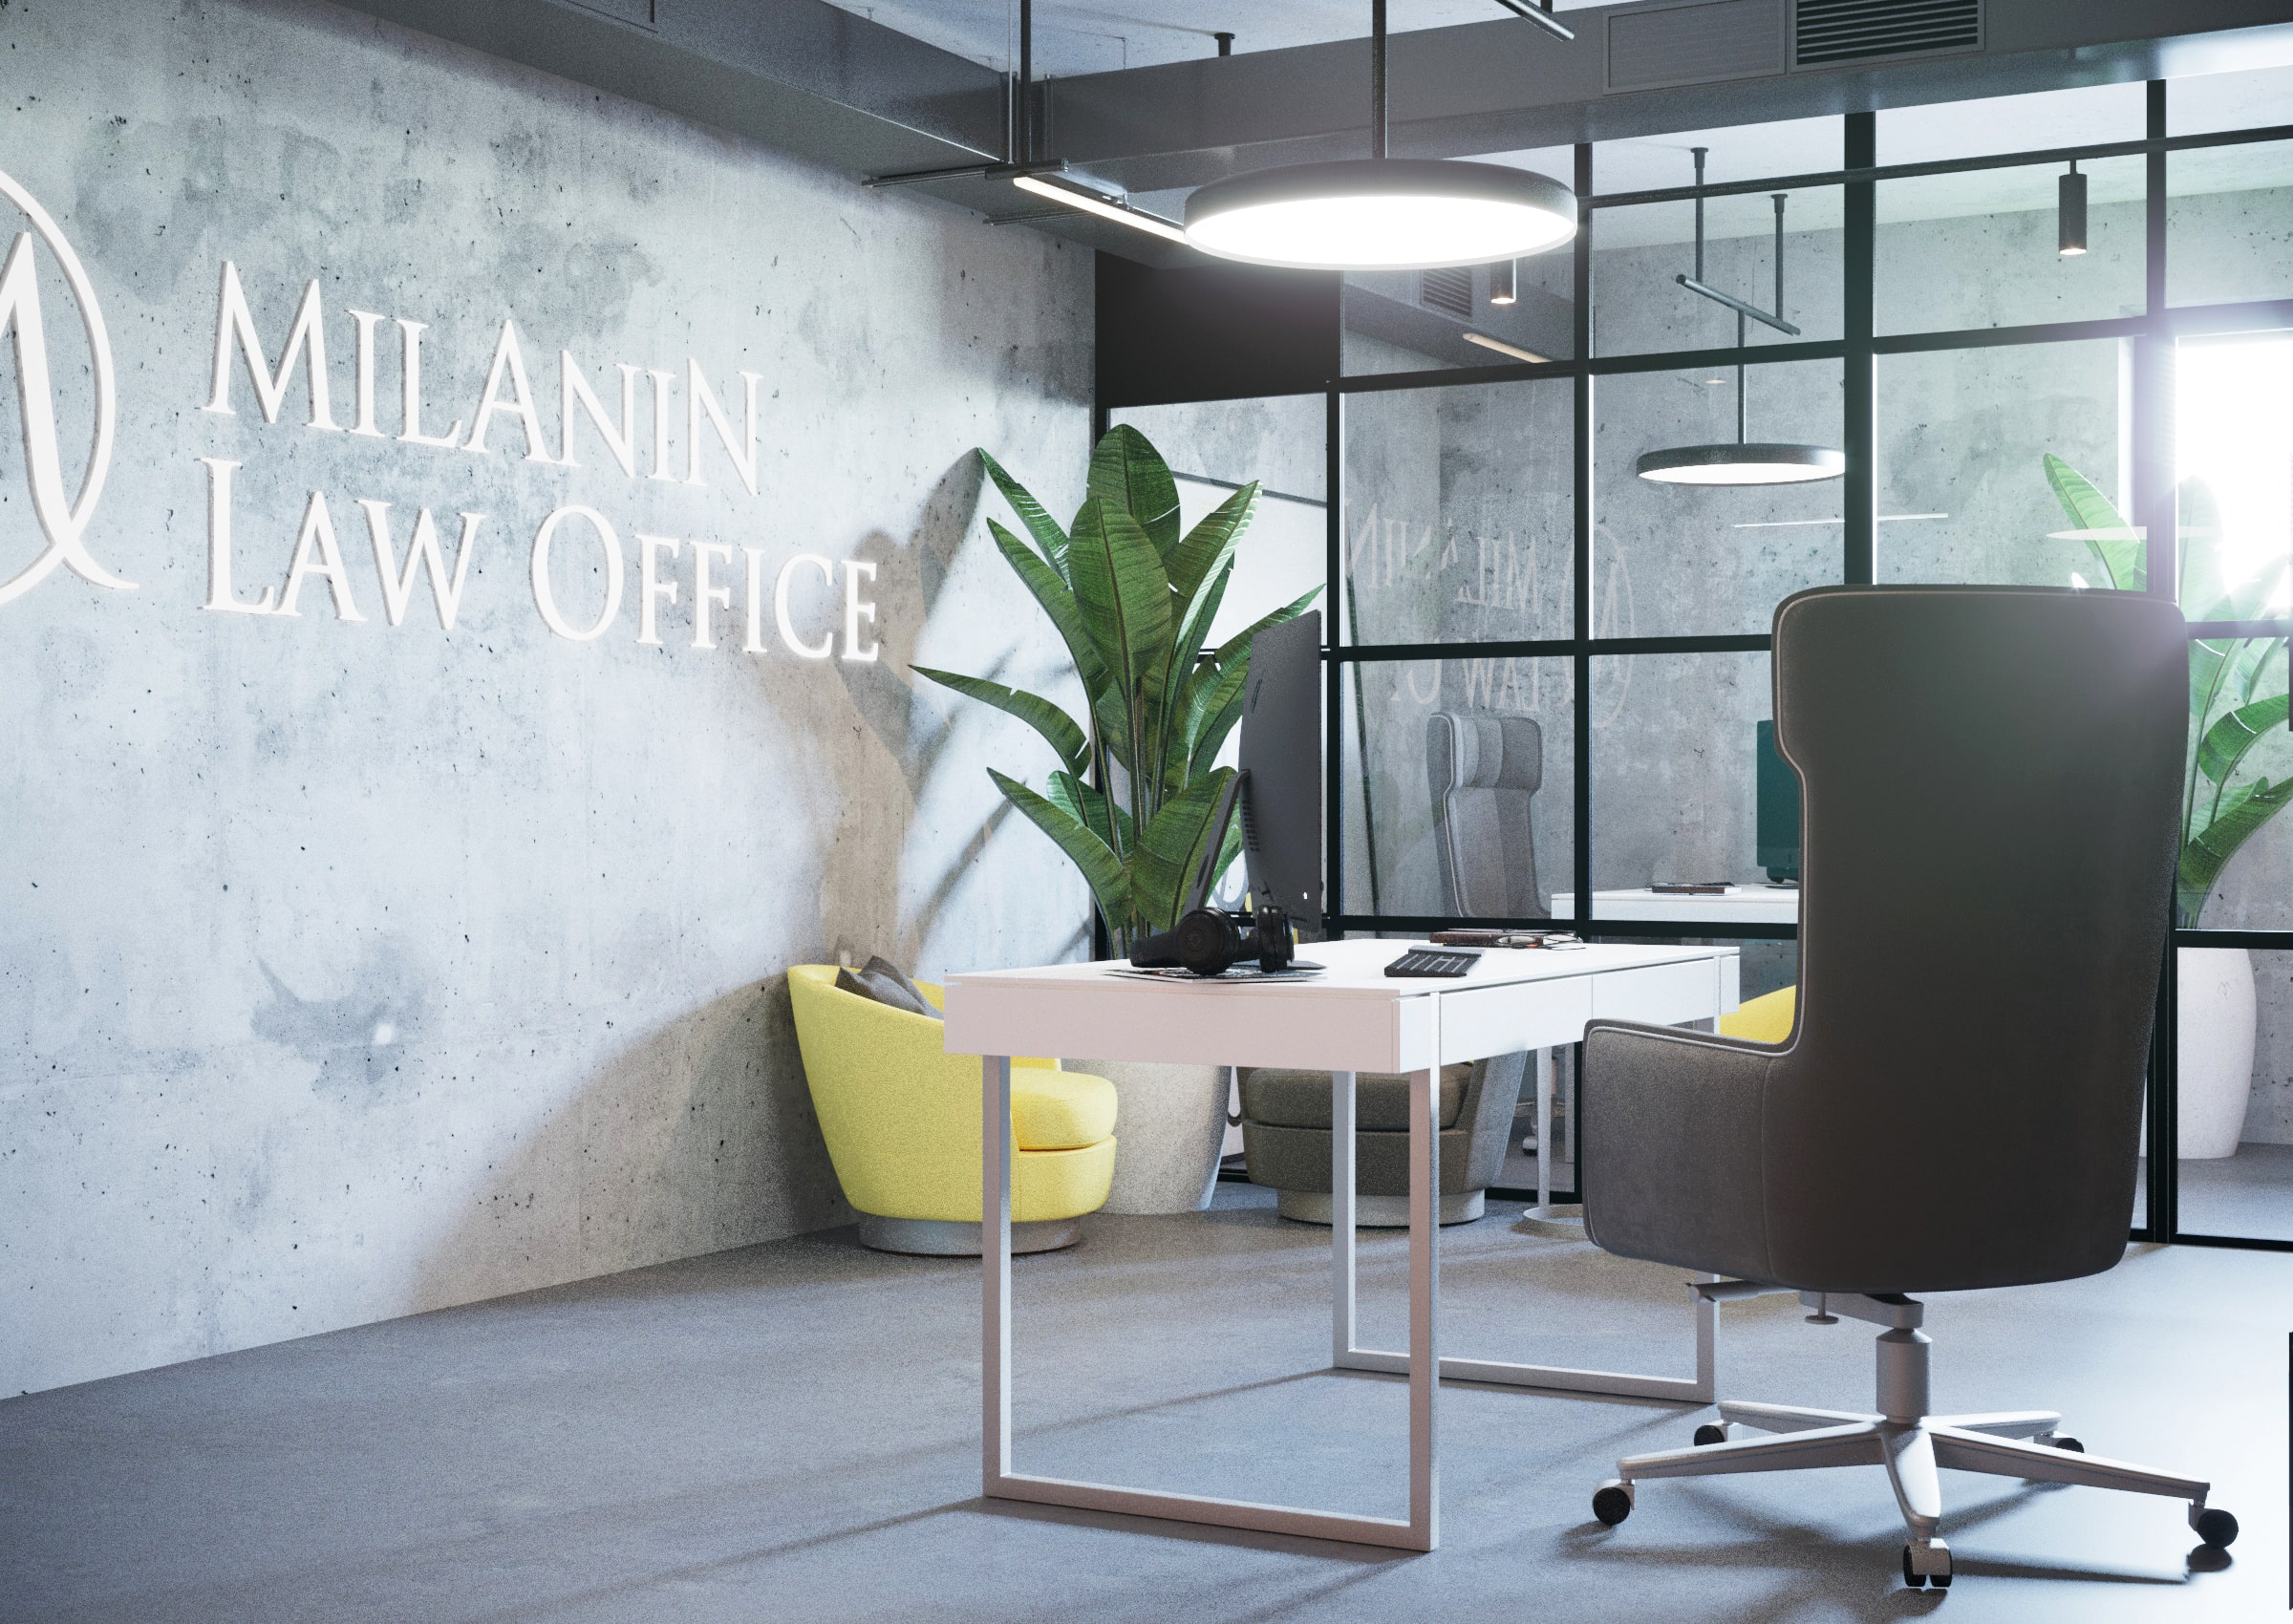 Milanin Law Office - Loft within the frame of law